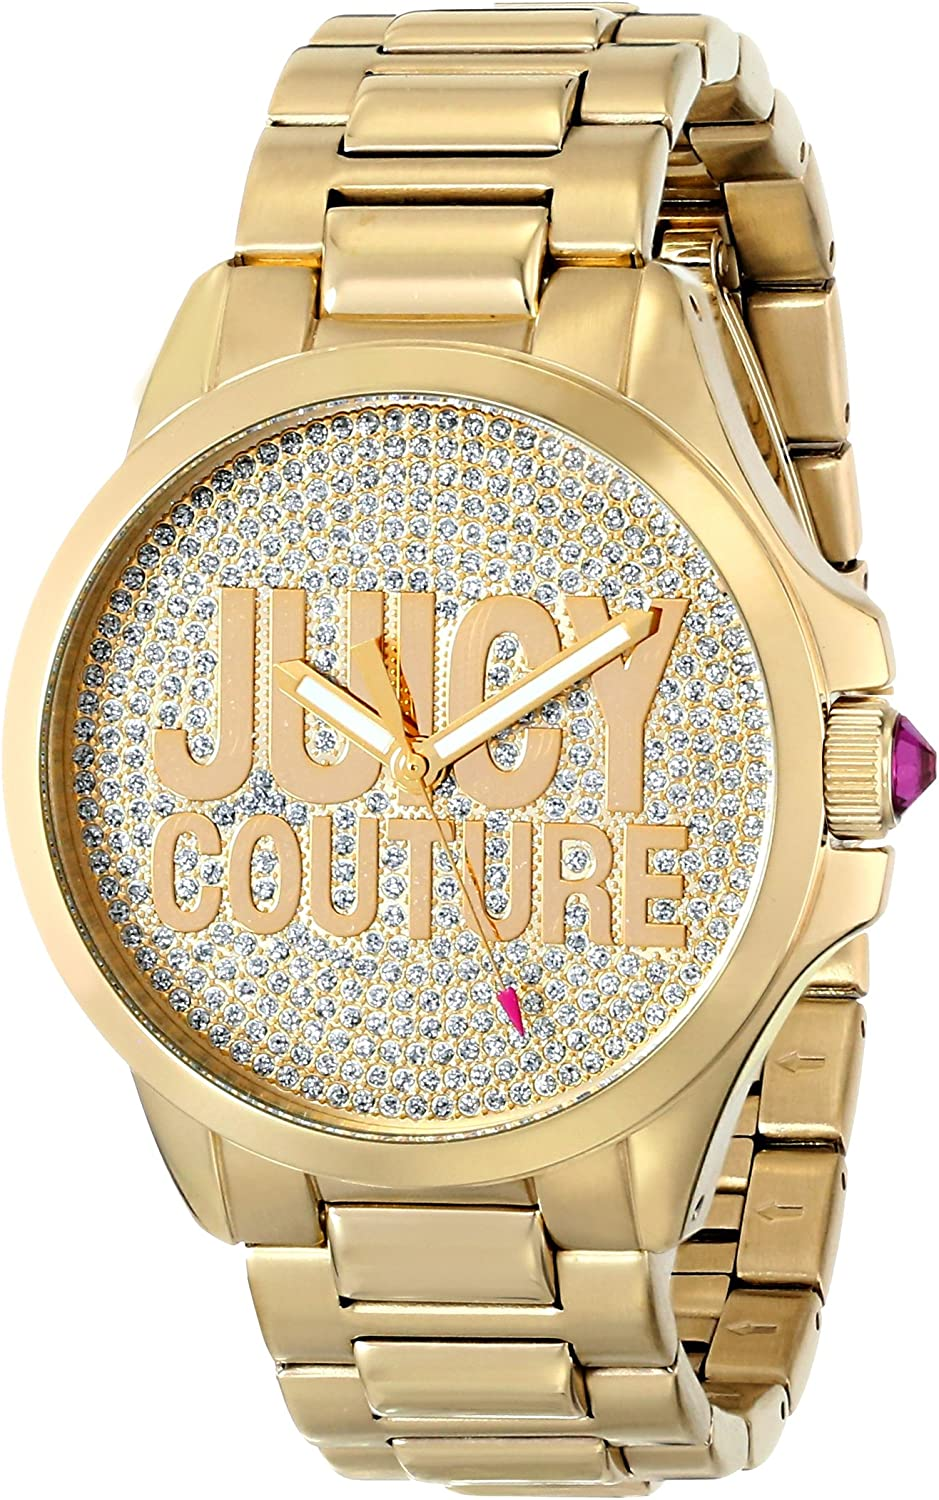 Juicy Couture Women s 1901148 Jetsetter Analog Display Quartz Gold Watch